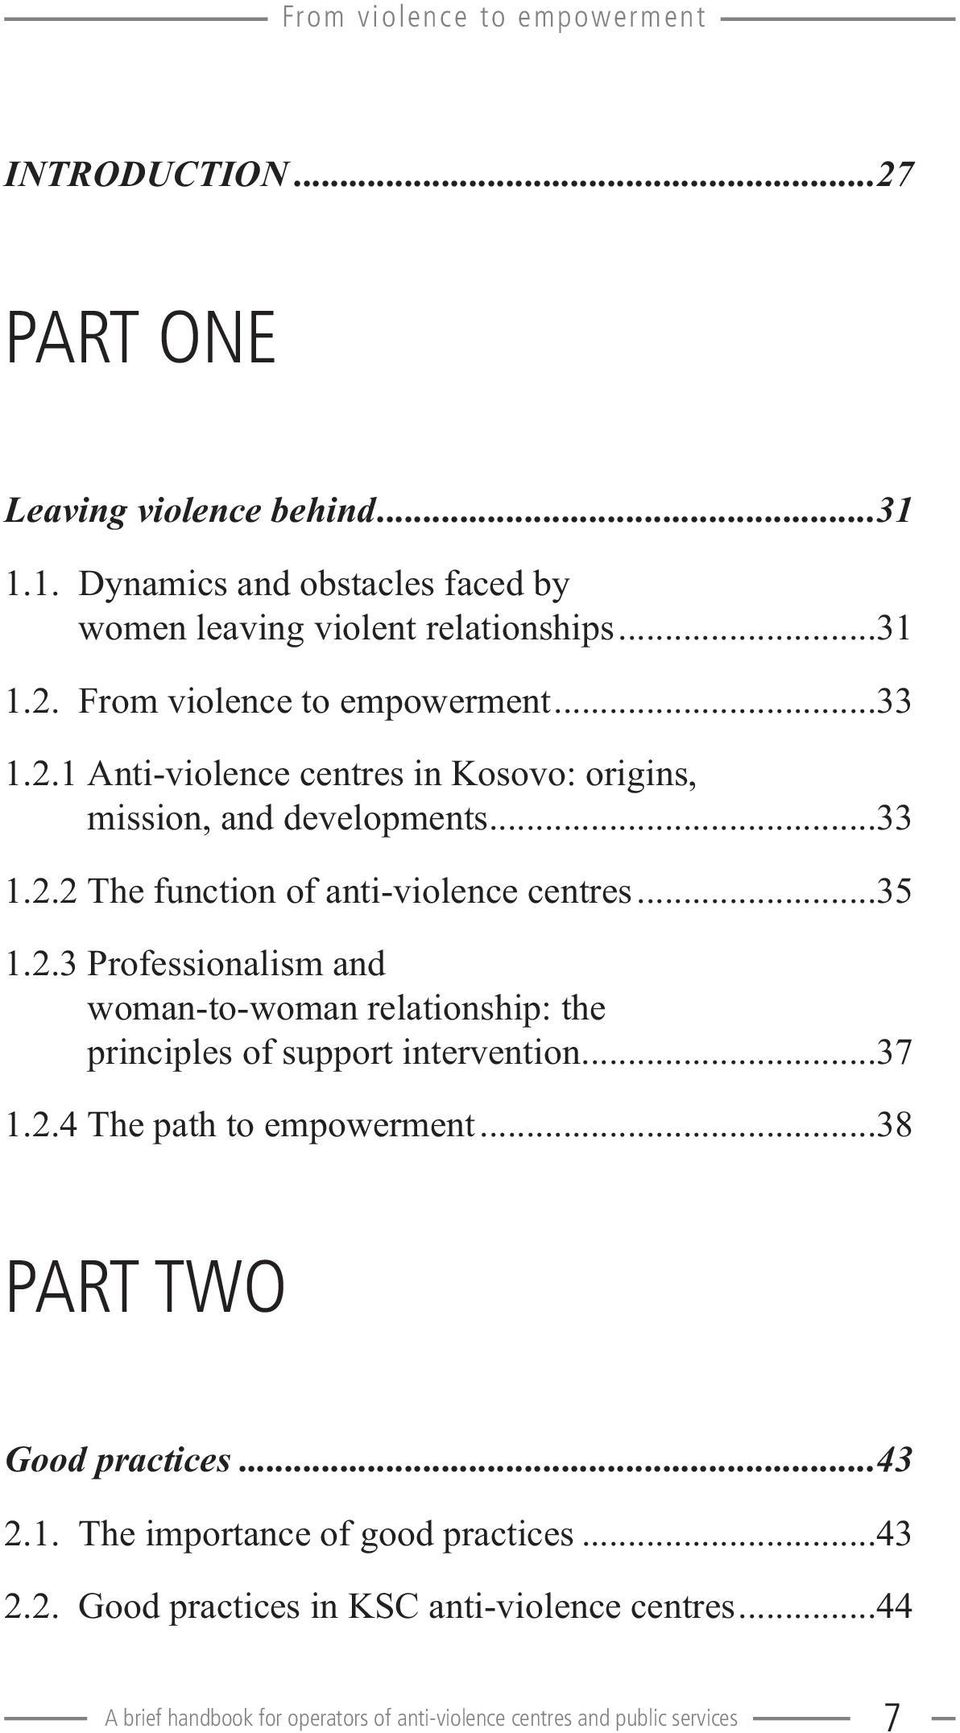 ..37 1.2.4 The path to empowerment...38 PART TWO Good practices...43 2.1. The importance of good practices...43 2.2. Good practices in KSC anti-violence centres.